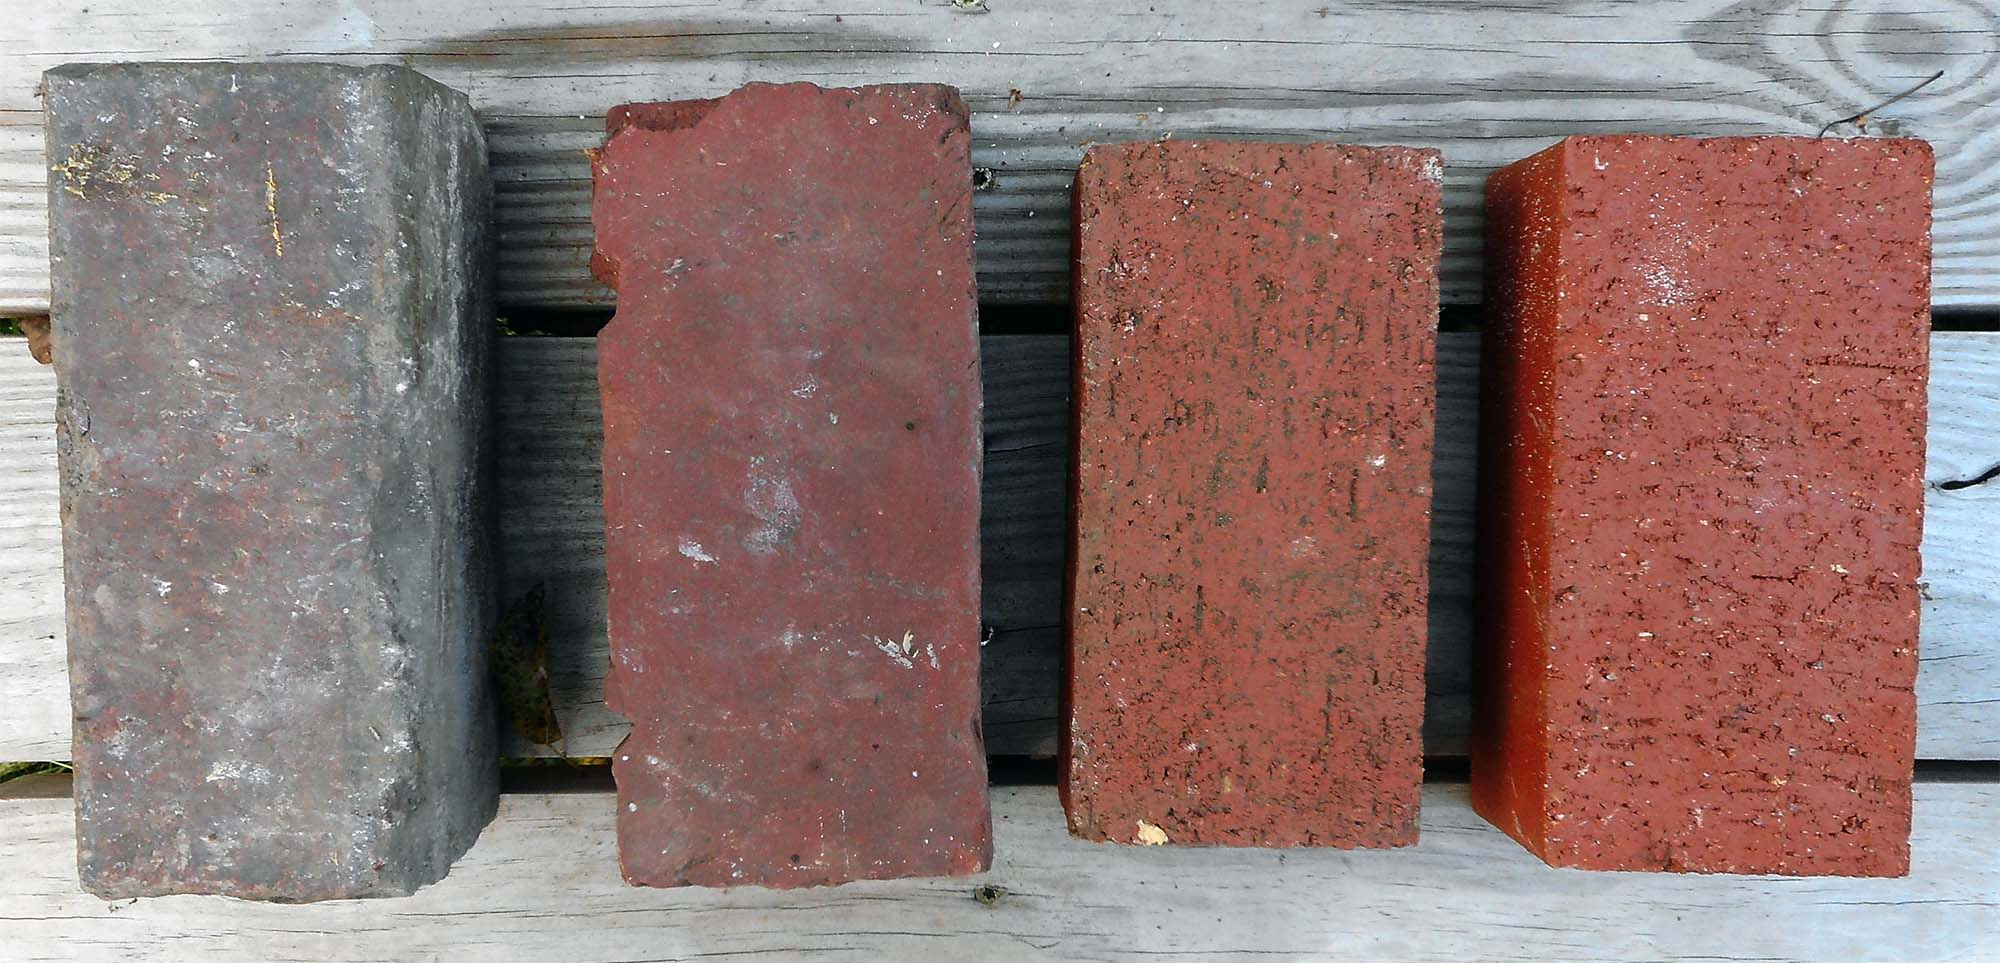 front door colors for brick houses 4 red brick samples on a wooden table